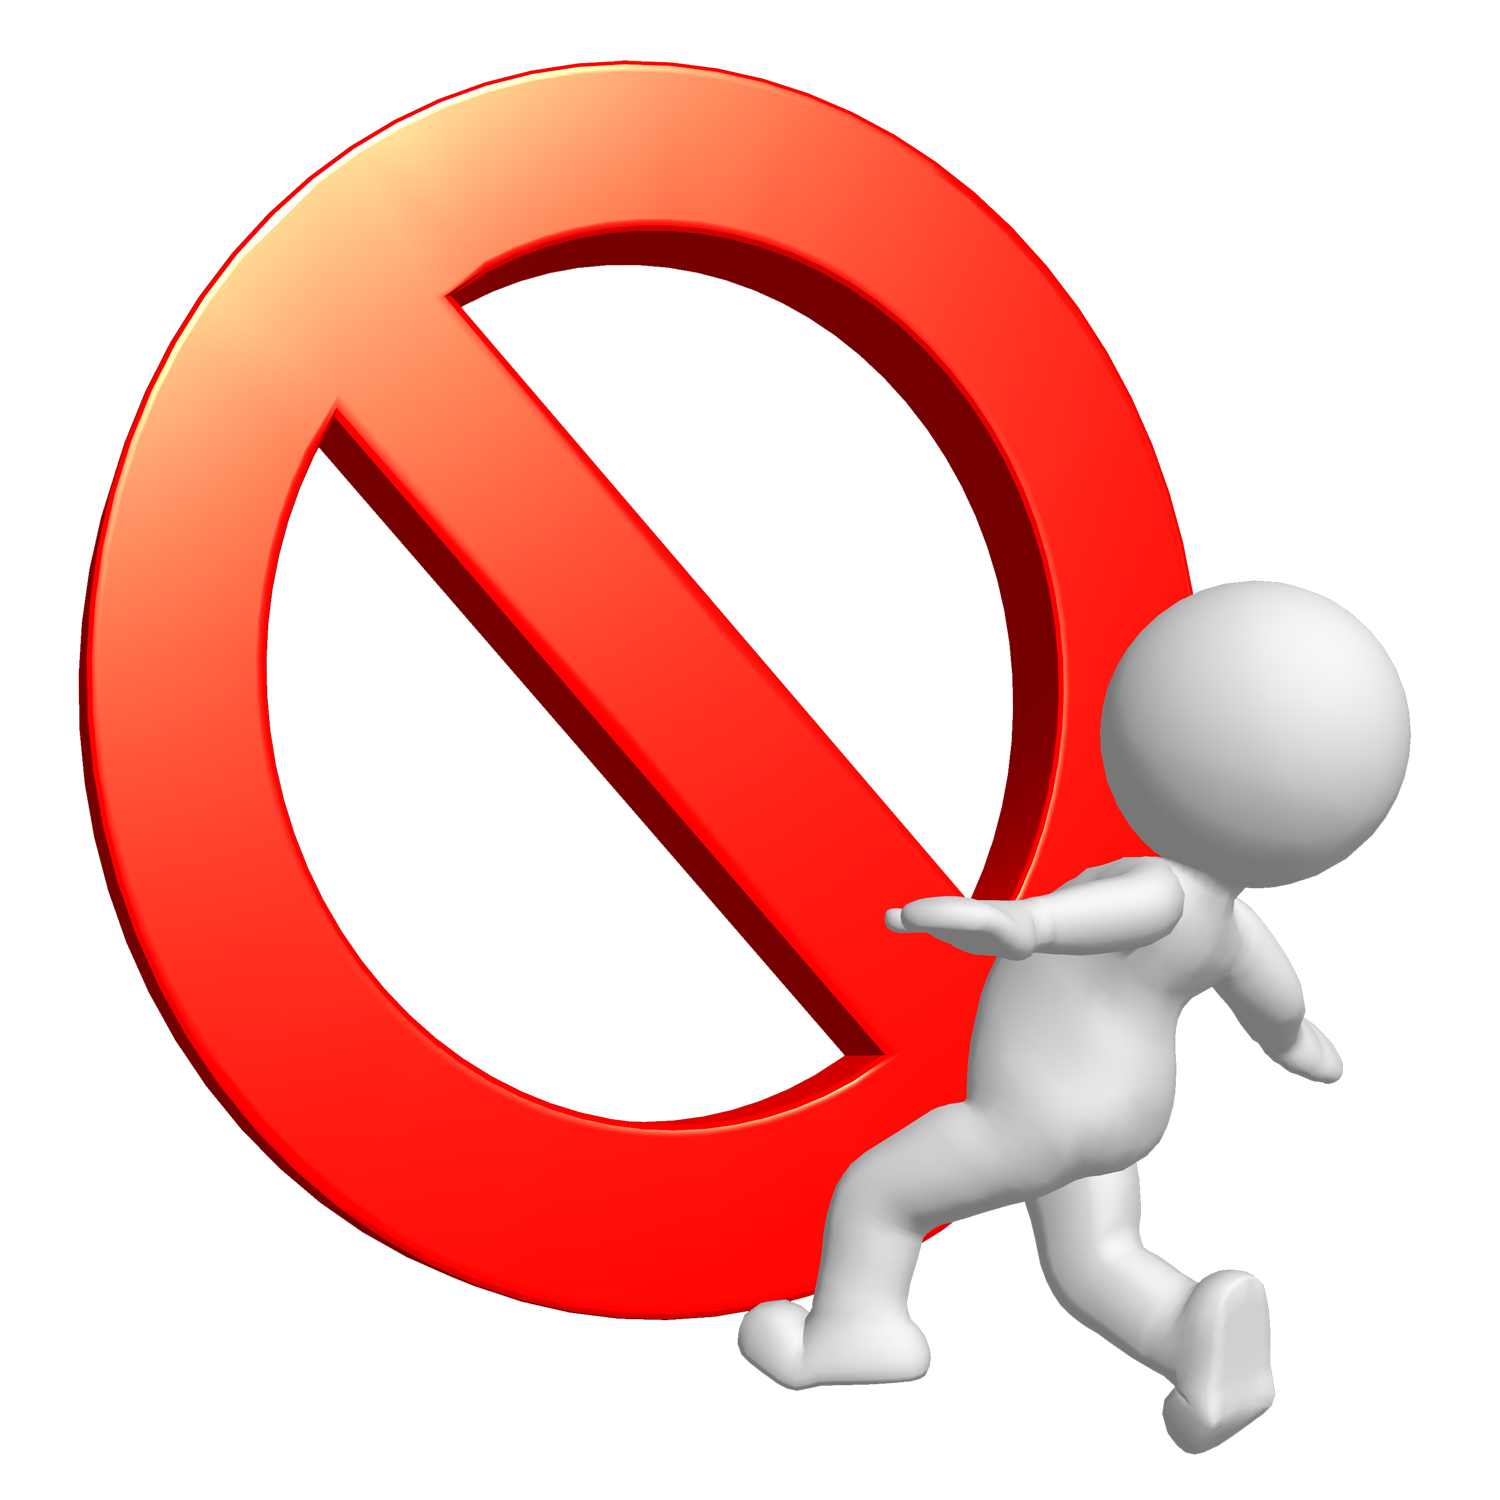 Stop Clipart Png Stop Sign Png Icon